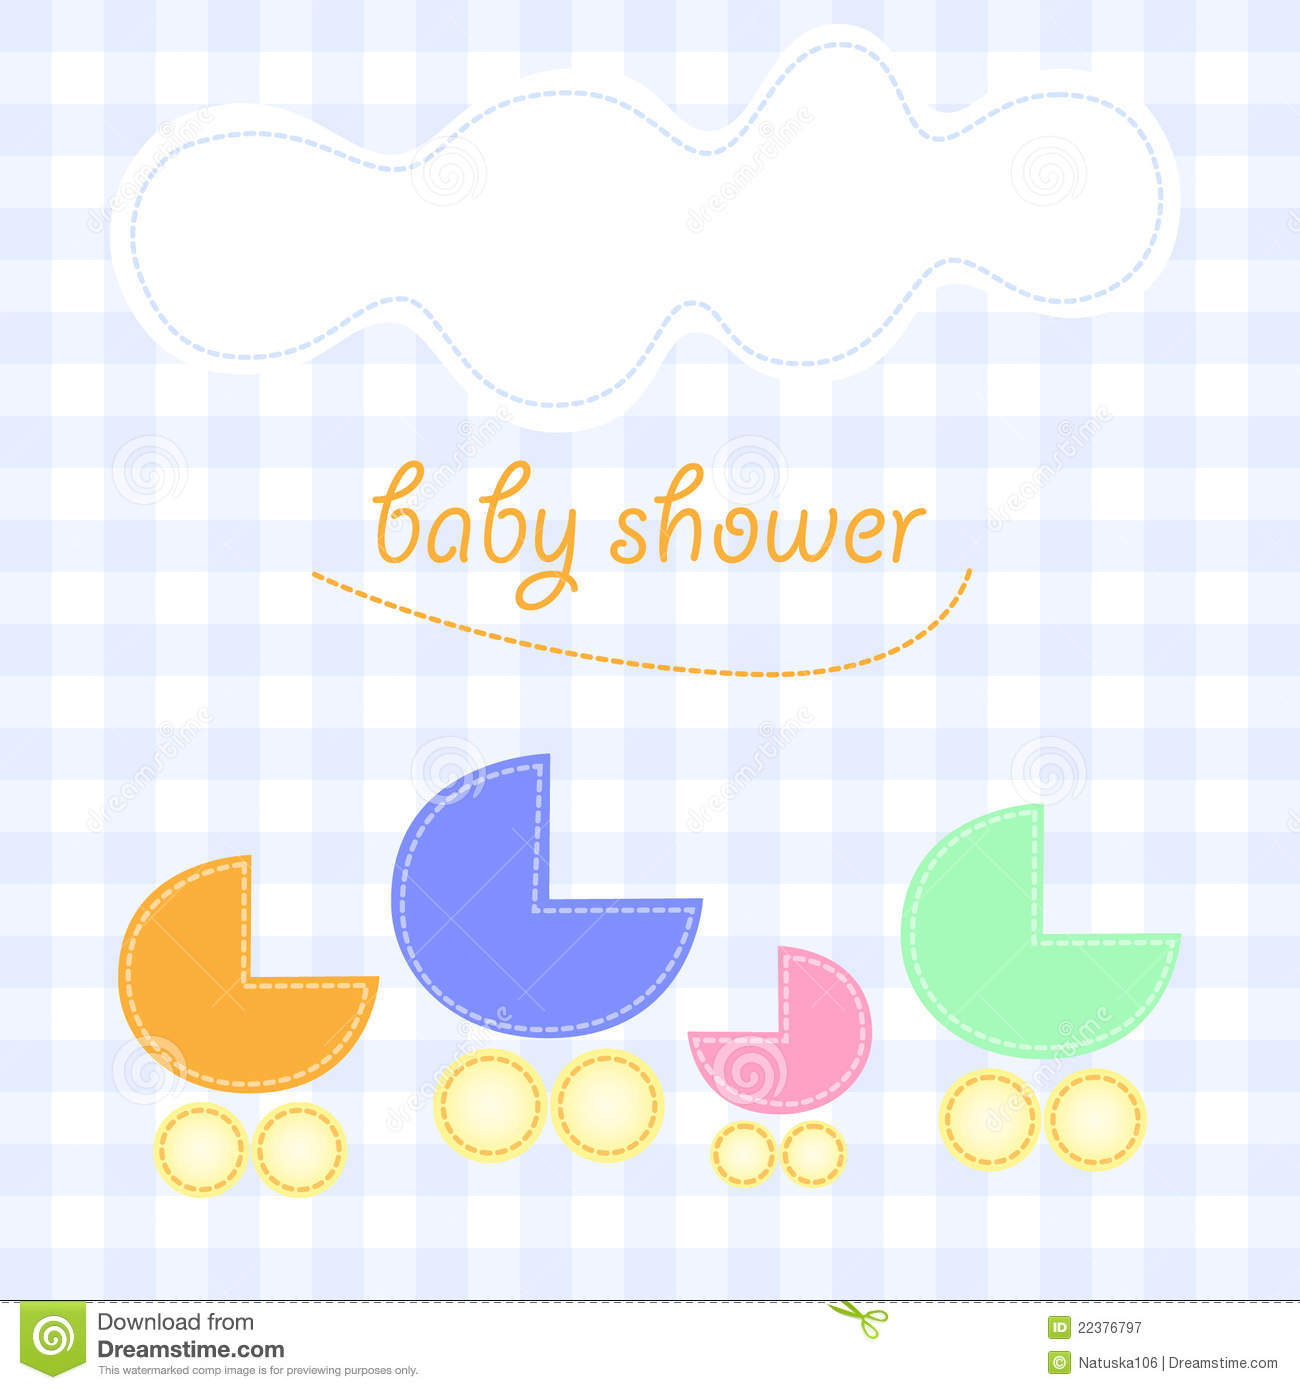 baby shower royalty free stock photography image 22376797